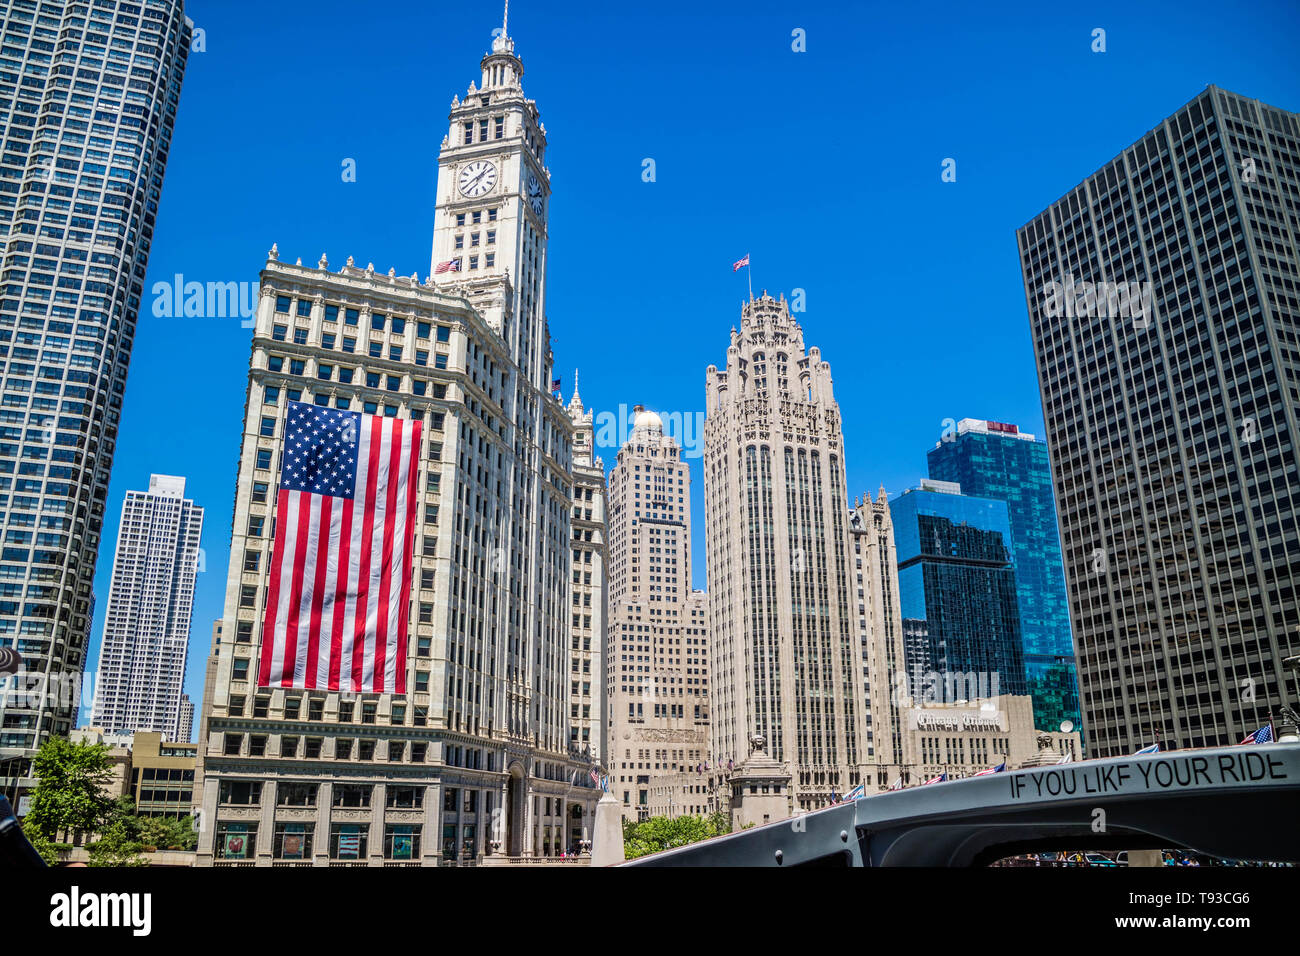 Chicago, IL, USA - July 8, 2018: The famous Wrigley building - Stock Image